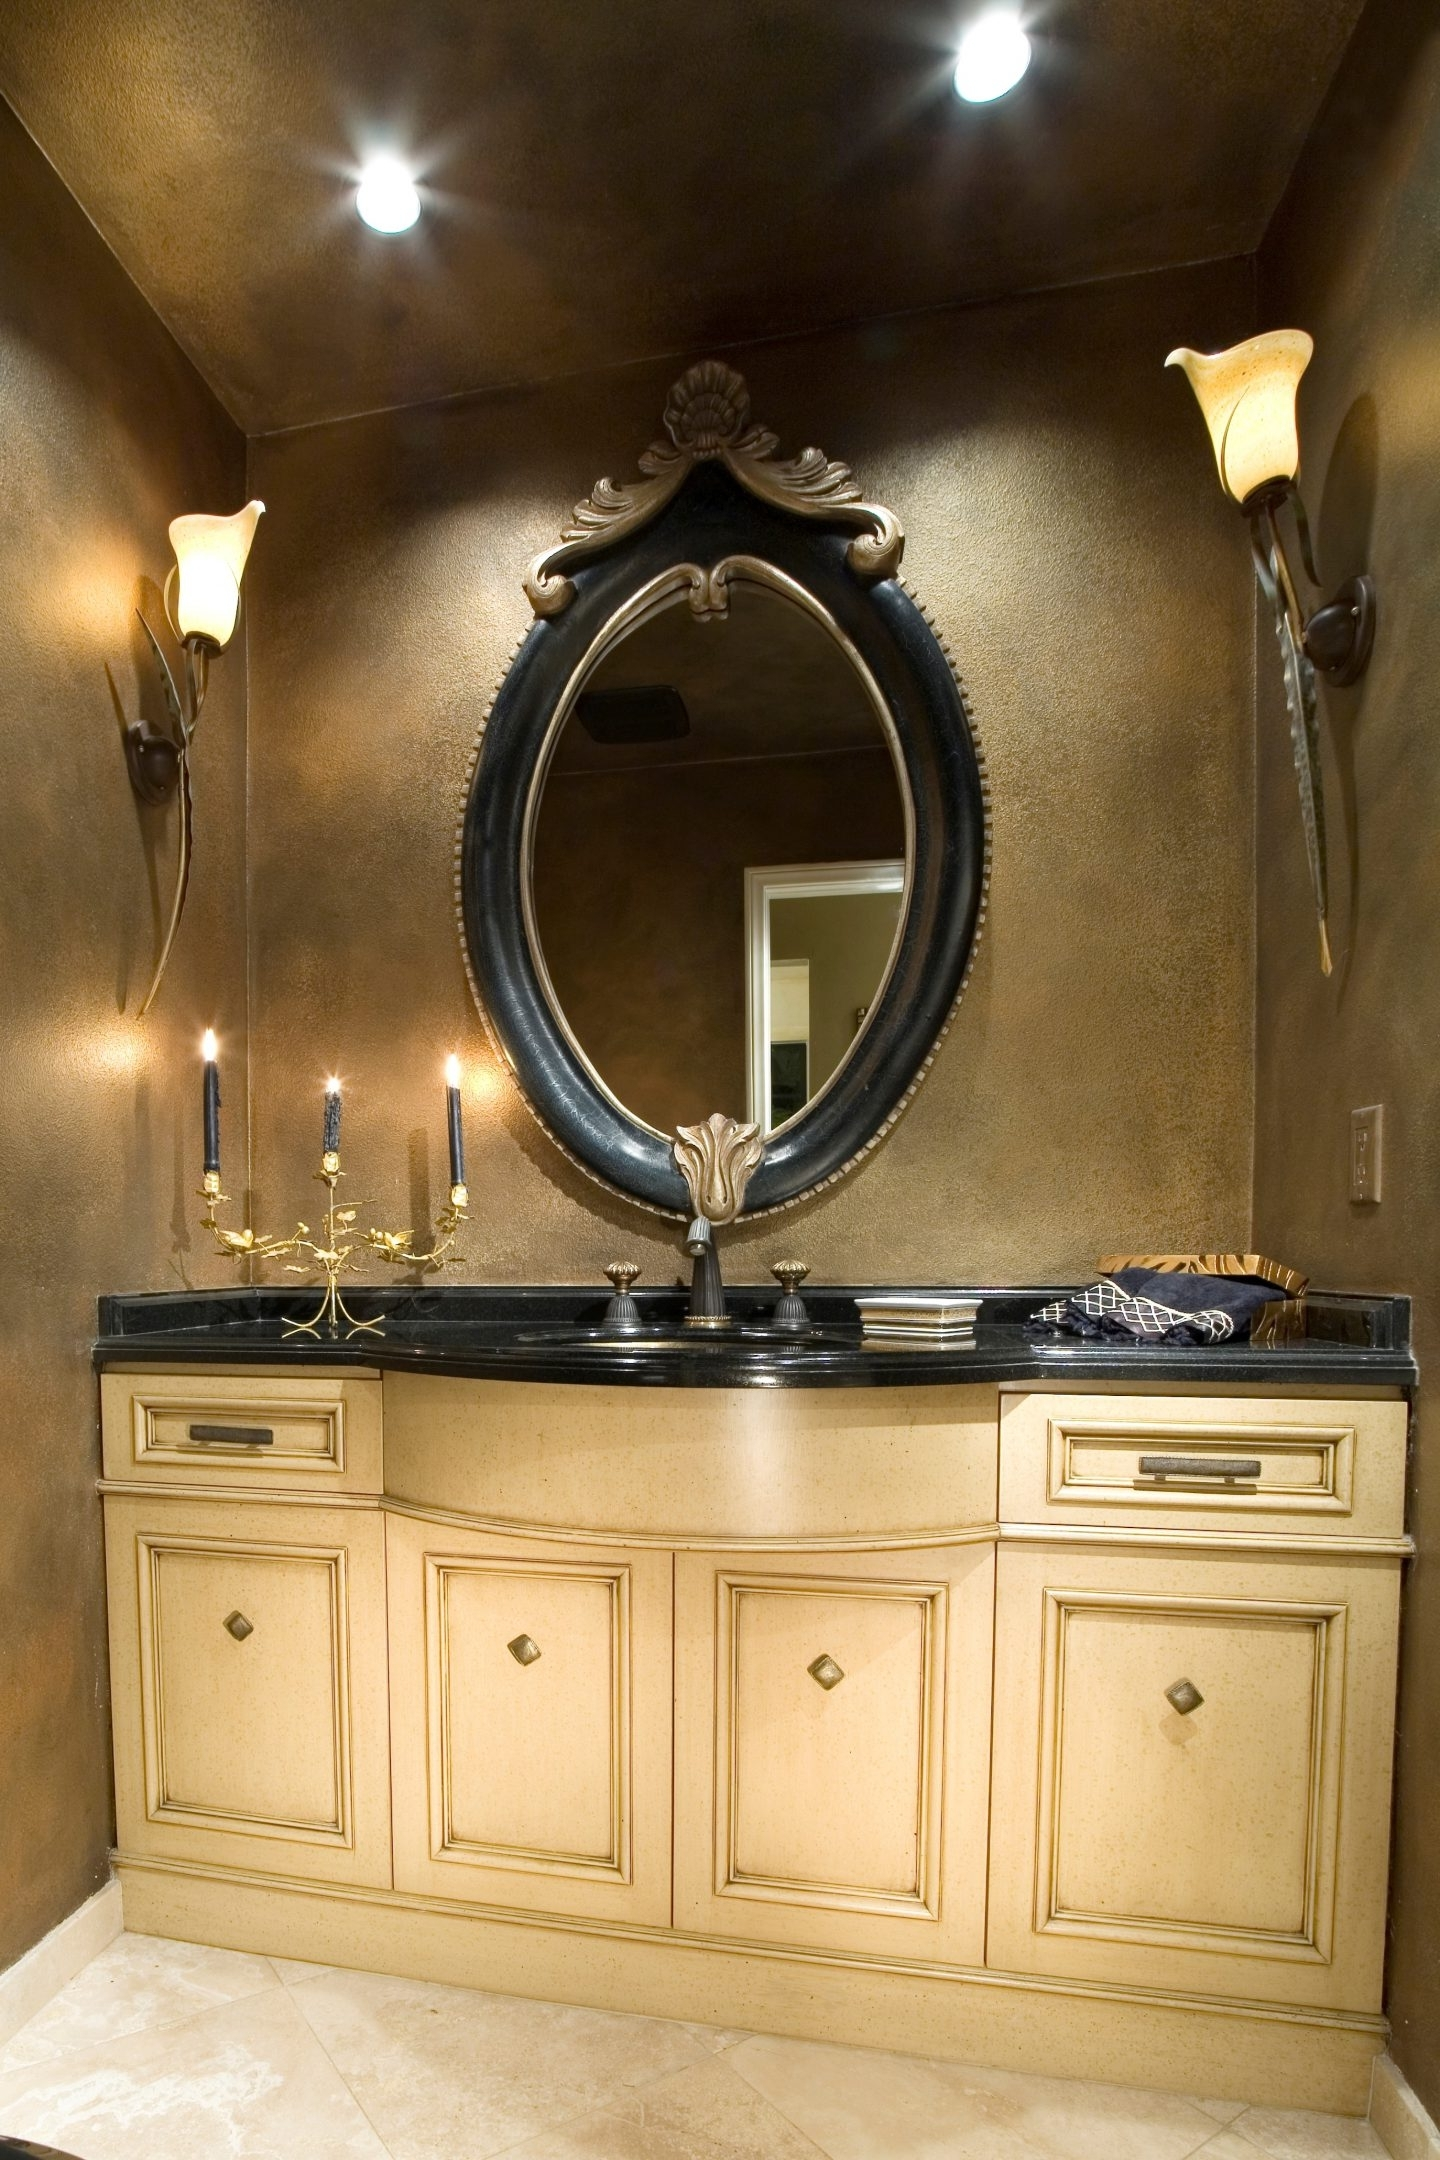 Fashionable Chandelier Bathroom Vanity Lighting Adorable Sconces With White For Chandelier Bathroom Vanity Lighting (View 7 of 20)